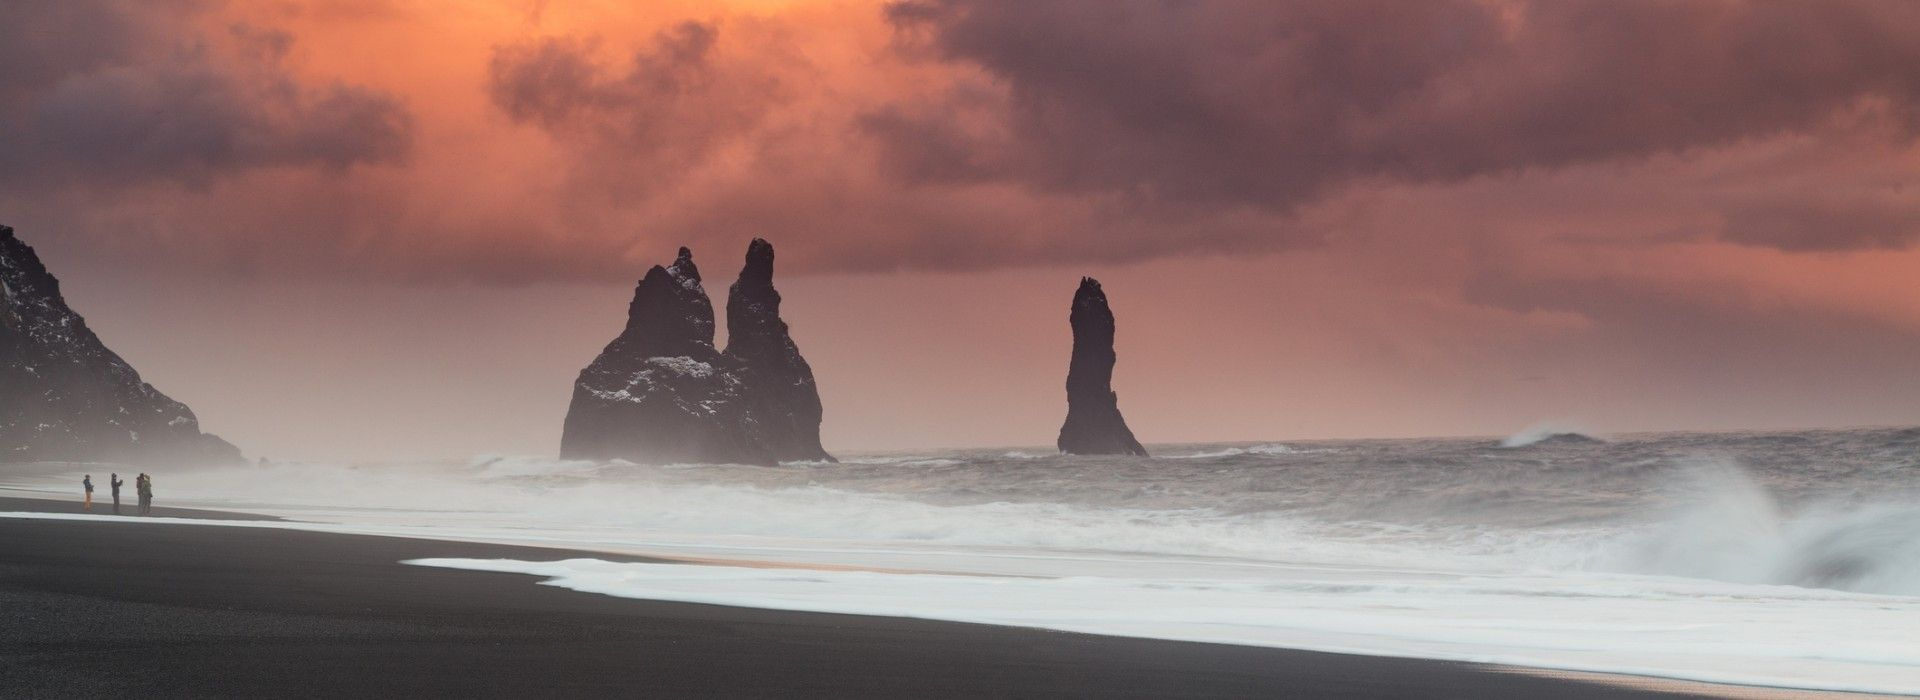 A trip to South Coast of Iceland will bring you to awesome natural sights